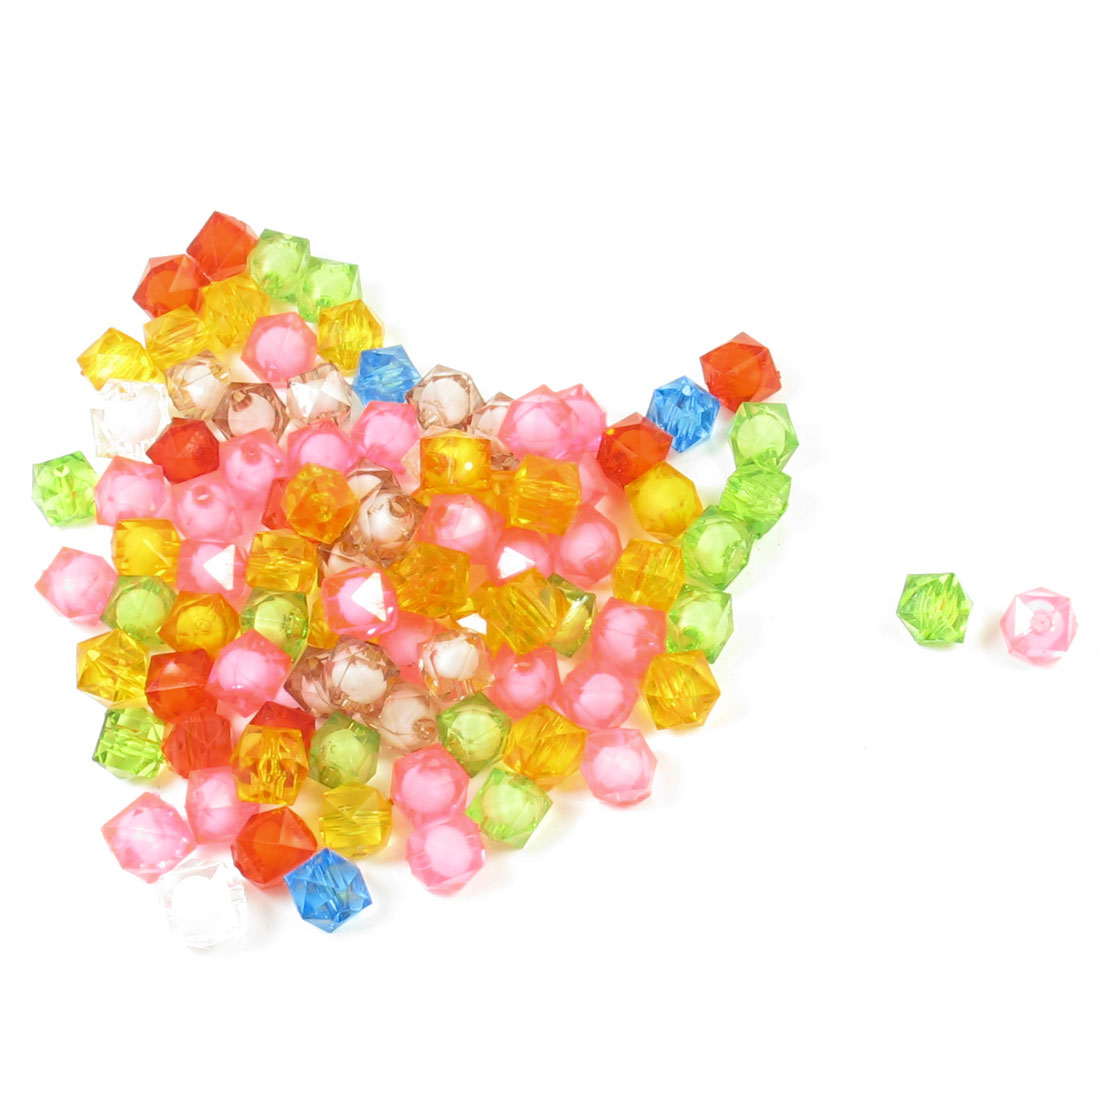 93 Pcs Jewelry Findings Faceted Plastic Beads Colorful w Hole